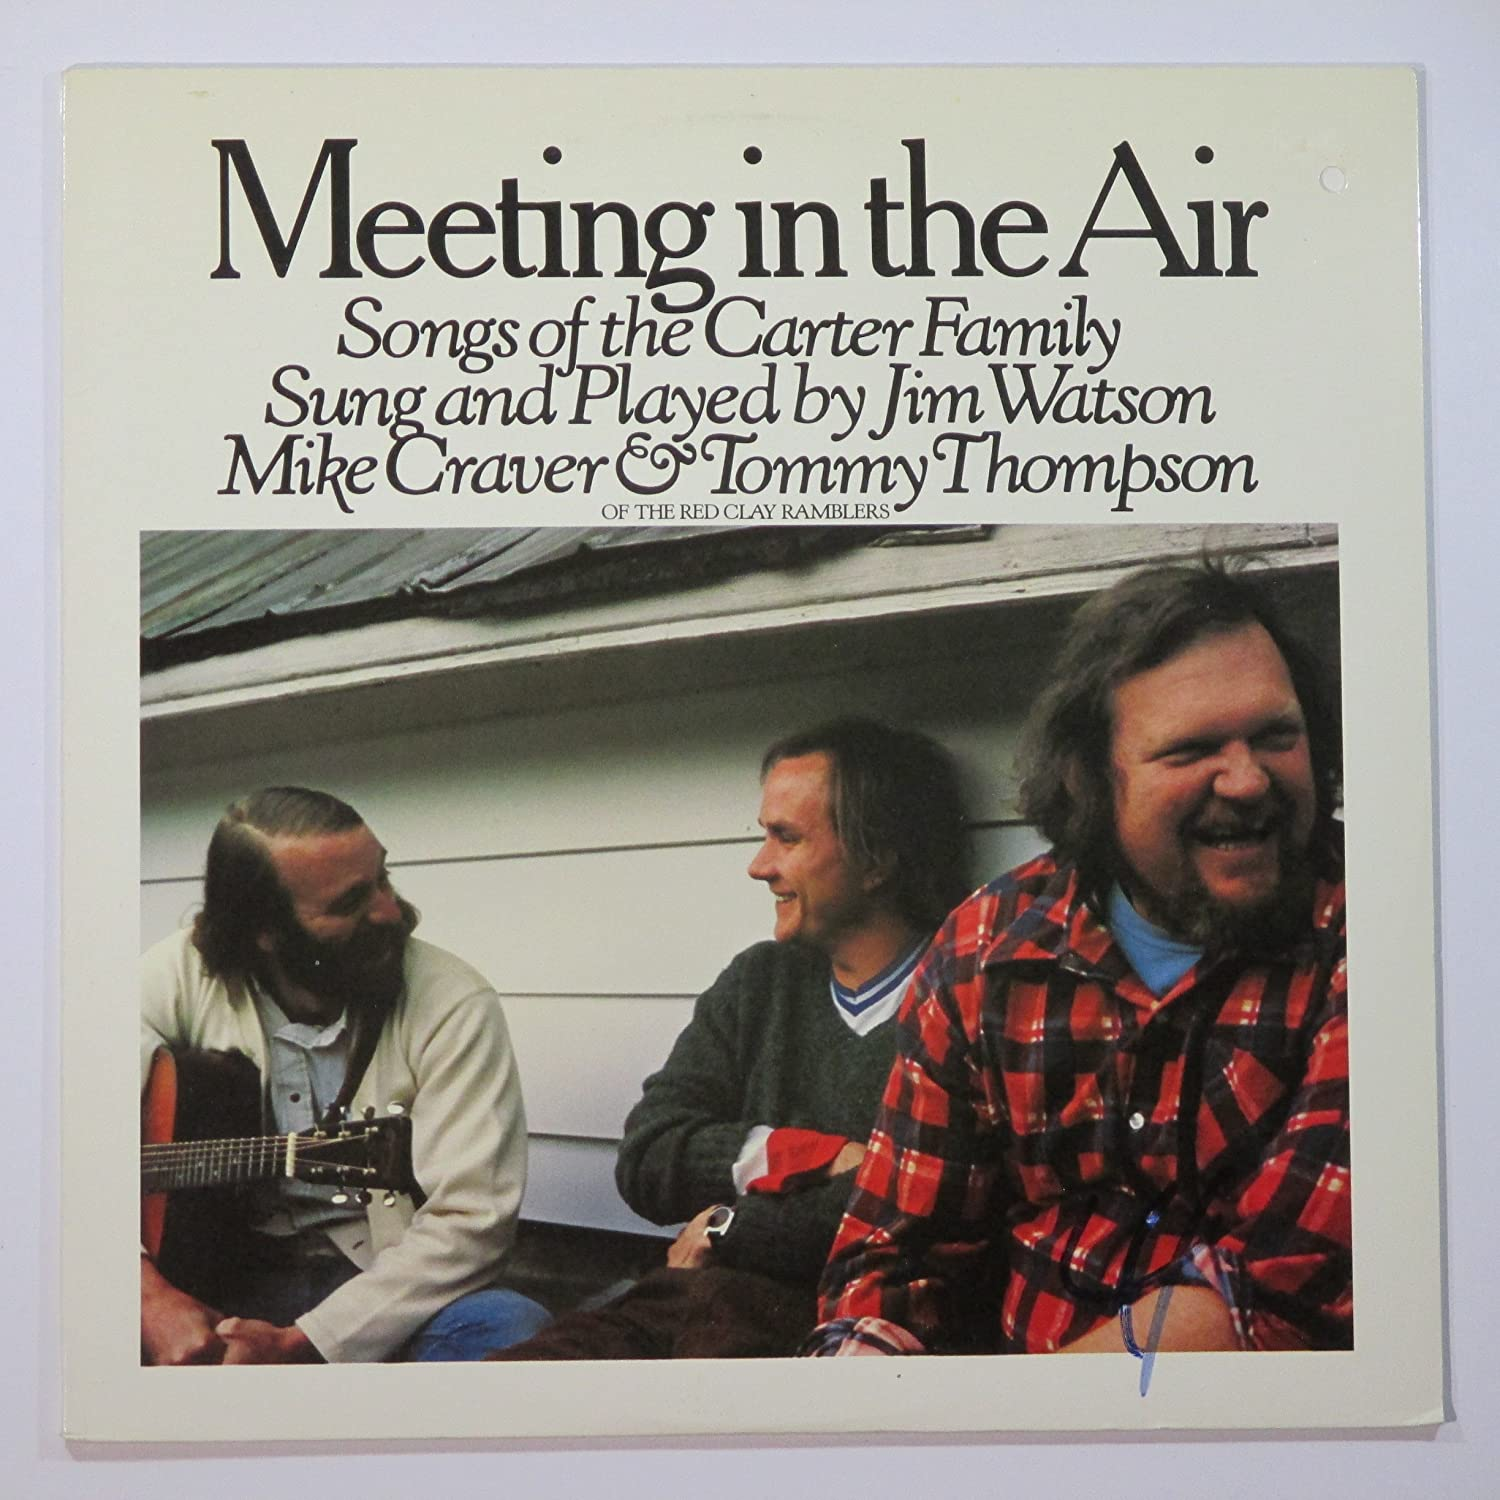 Jim Watson, Mike Craver, Tommy Thompson - Meeting In The Air, Songs Of The Carter Family, Vinyl LP - Amazon.com Music